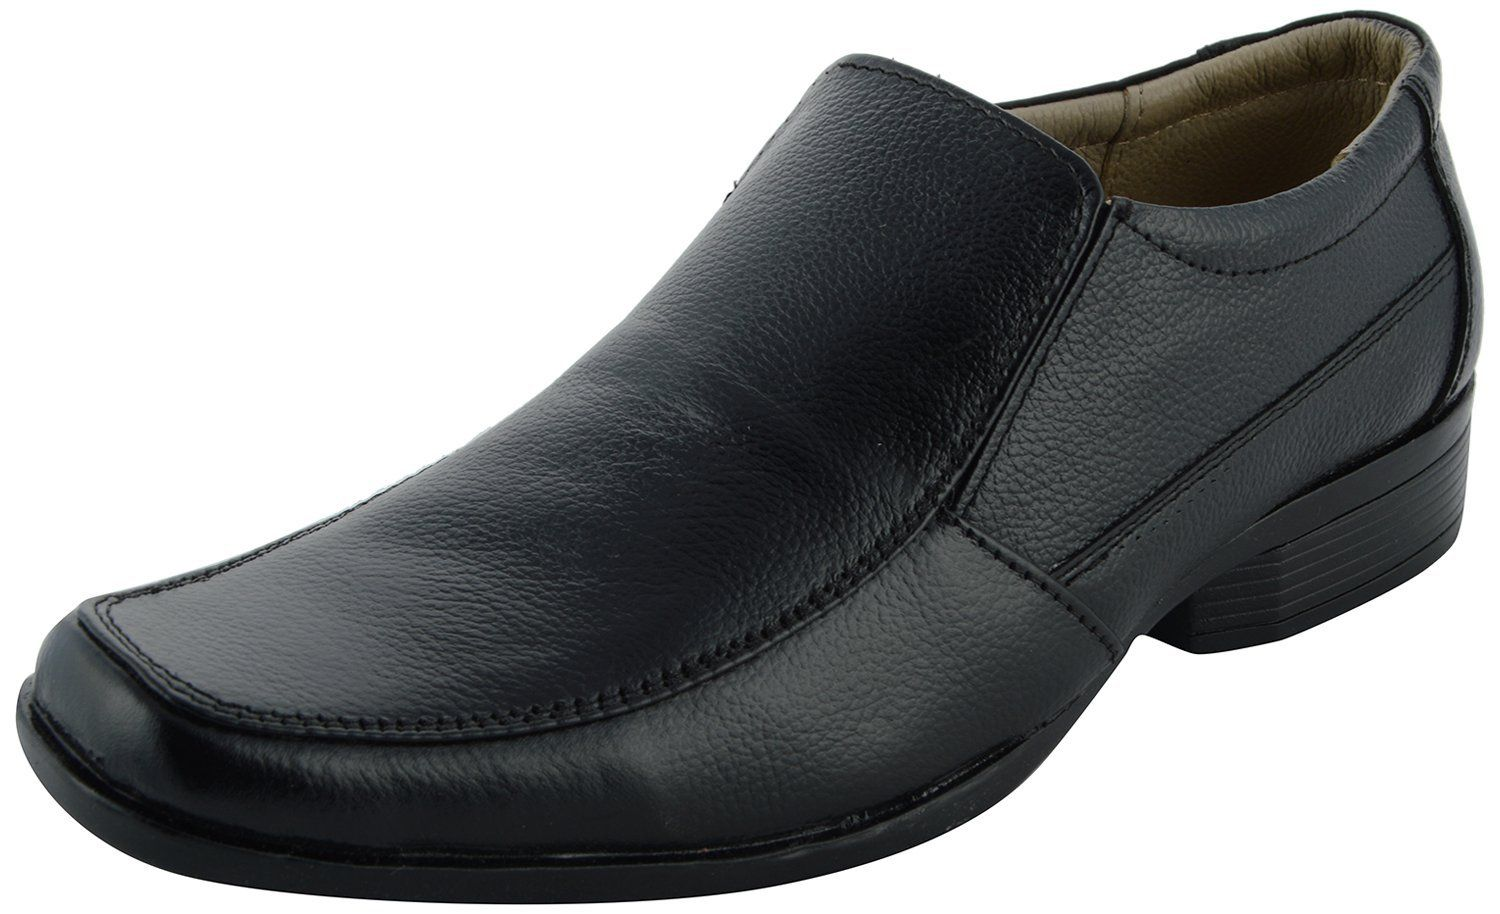 4c9376532936d LeatherKraft Men's Leather Formal Shoes: Buy Online at Low Prices in ...